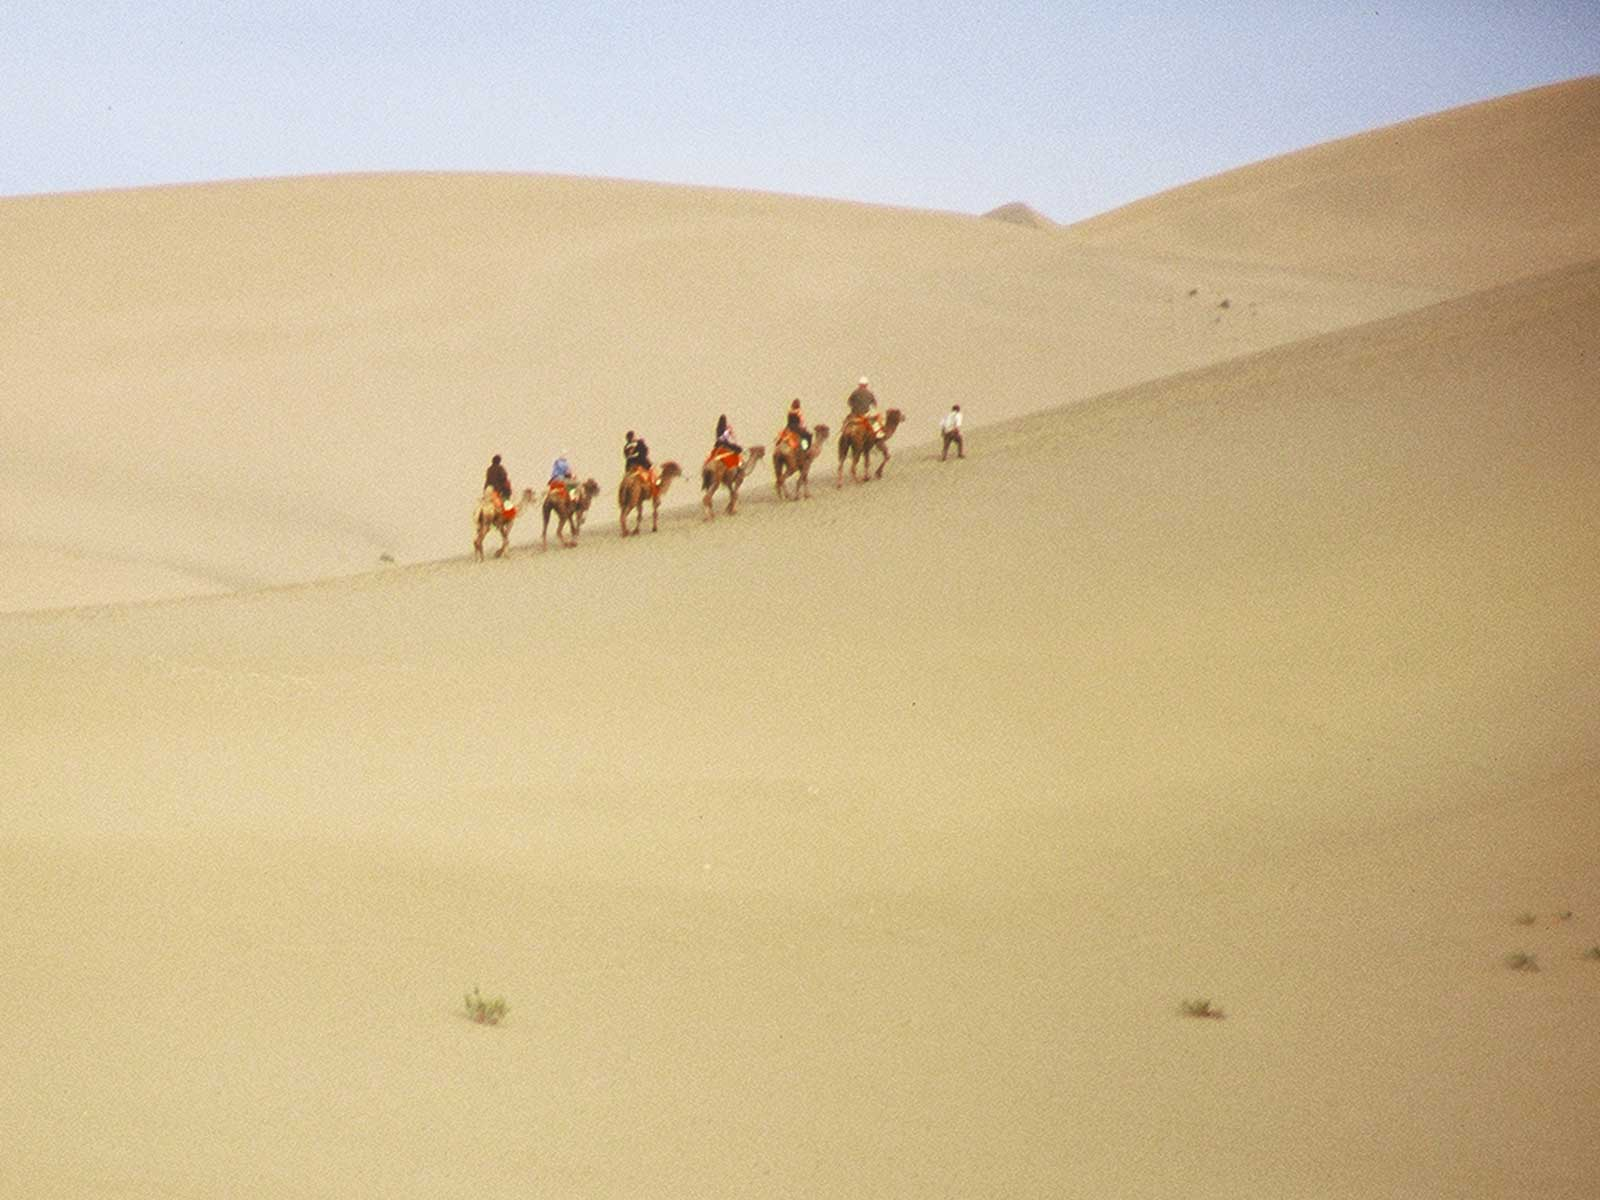 University of Hawaii students at Dunhuang - Singing Sand Dunes - Silk Road Photo Journal - Steven Andrew Martin - Xinjiang China 2001